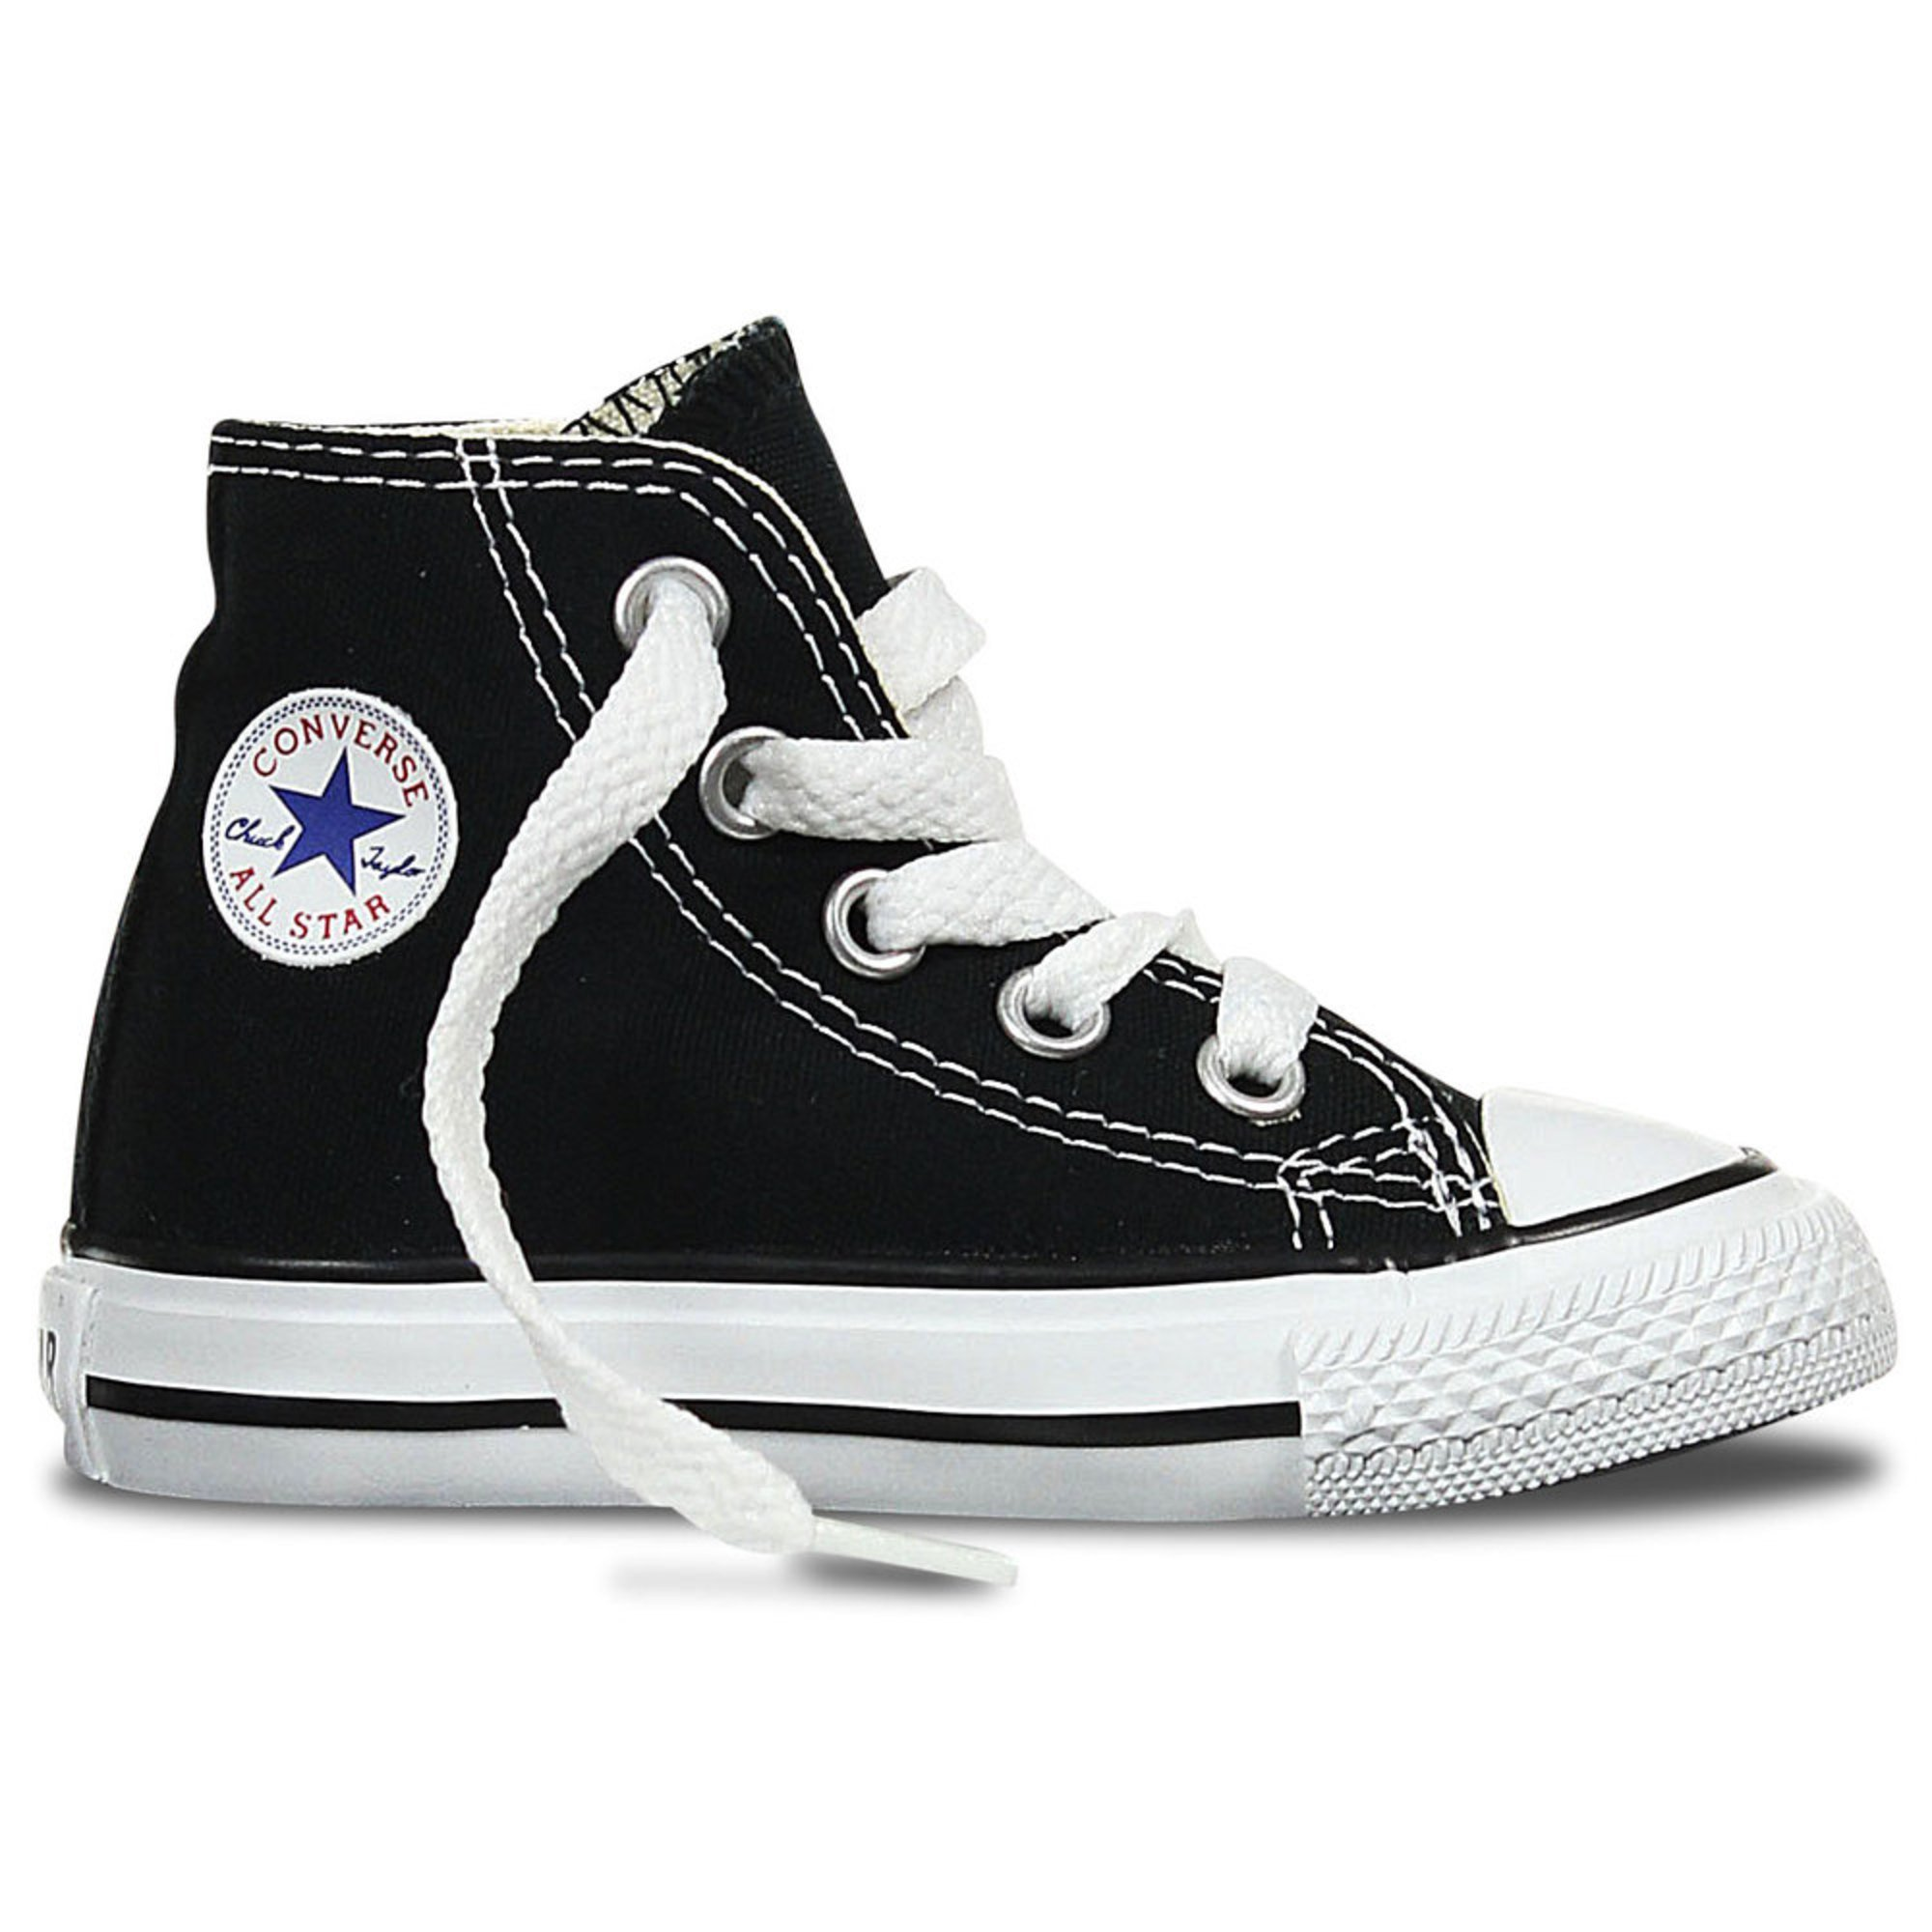 Converse. Converse Boys Chuck Taylor All Star Hi Top Basketball Shoe  (Infant Toddler) a1c42f55a